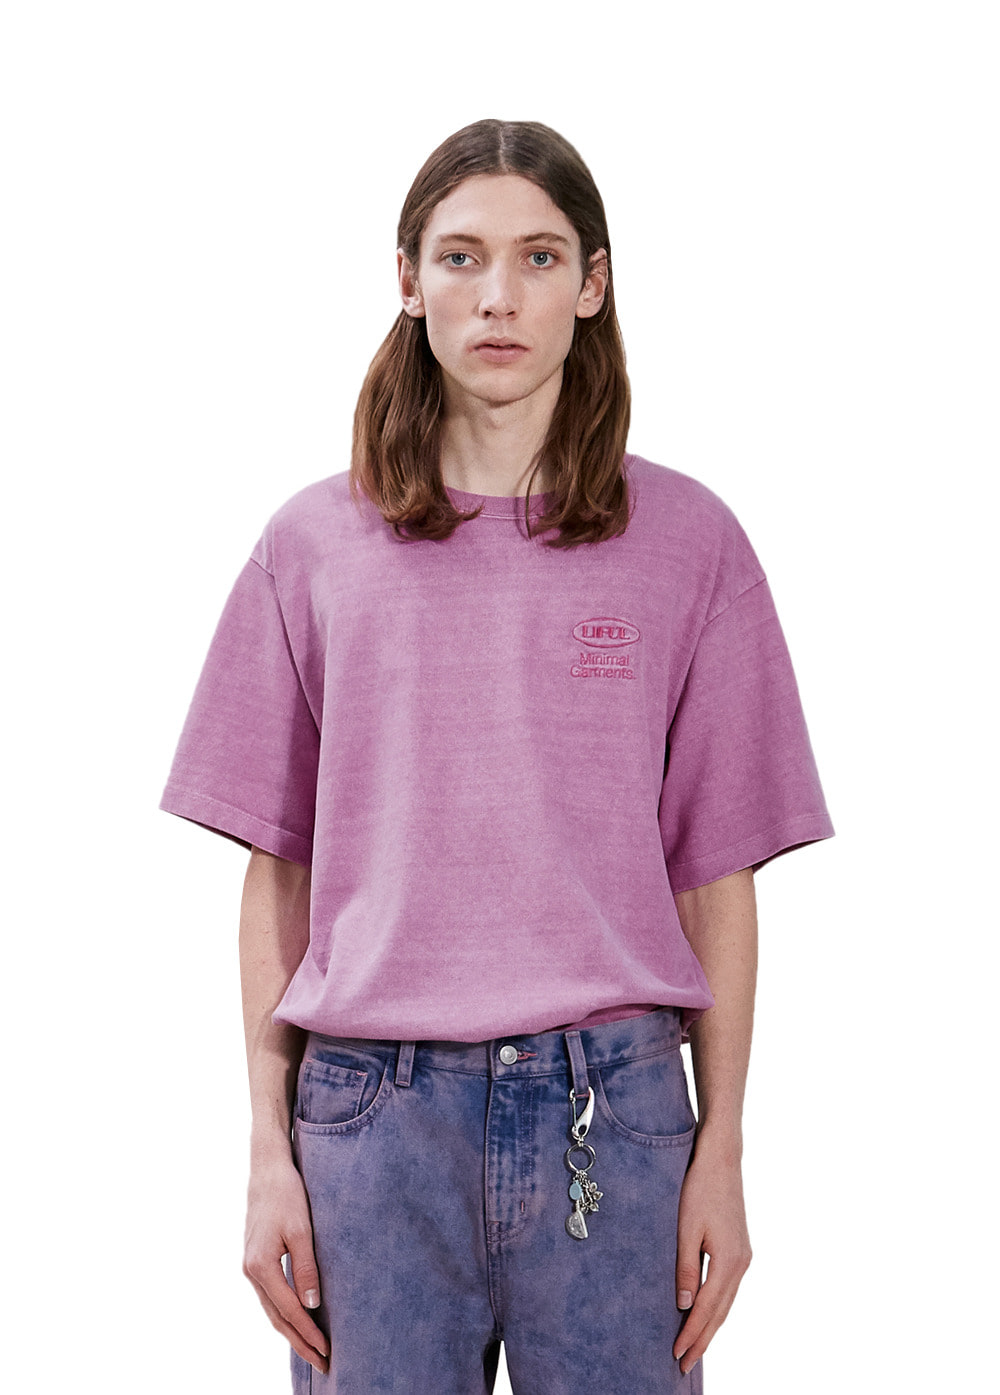 P-DYED OVAL LOGO TEE pink